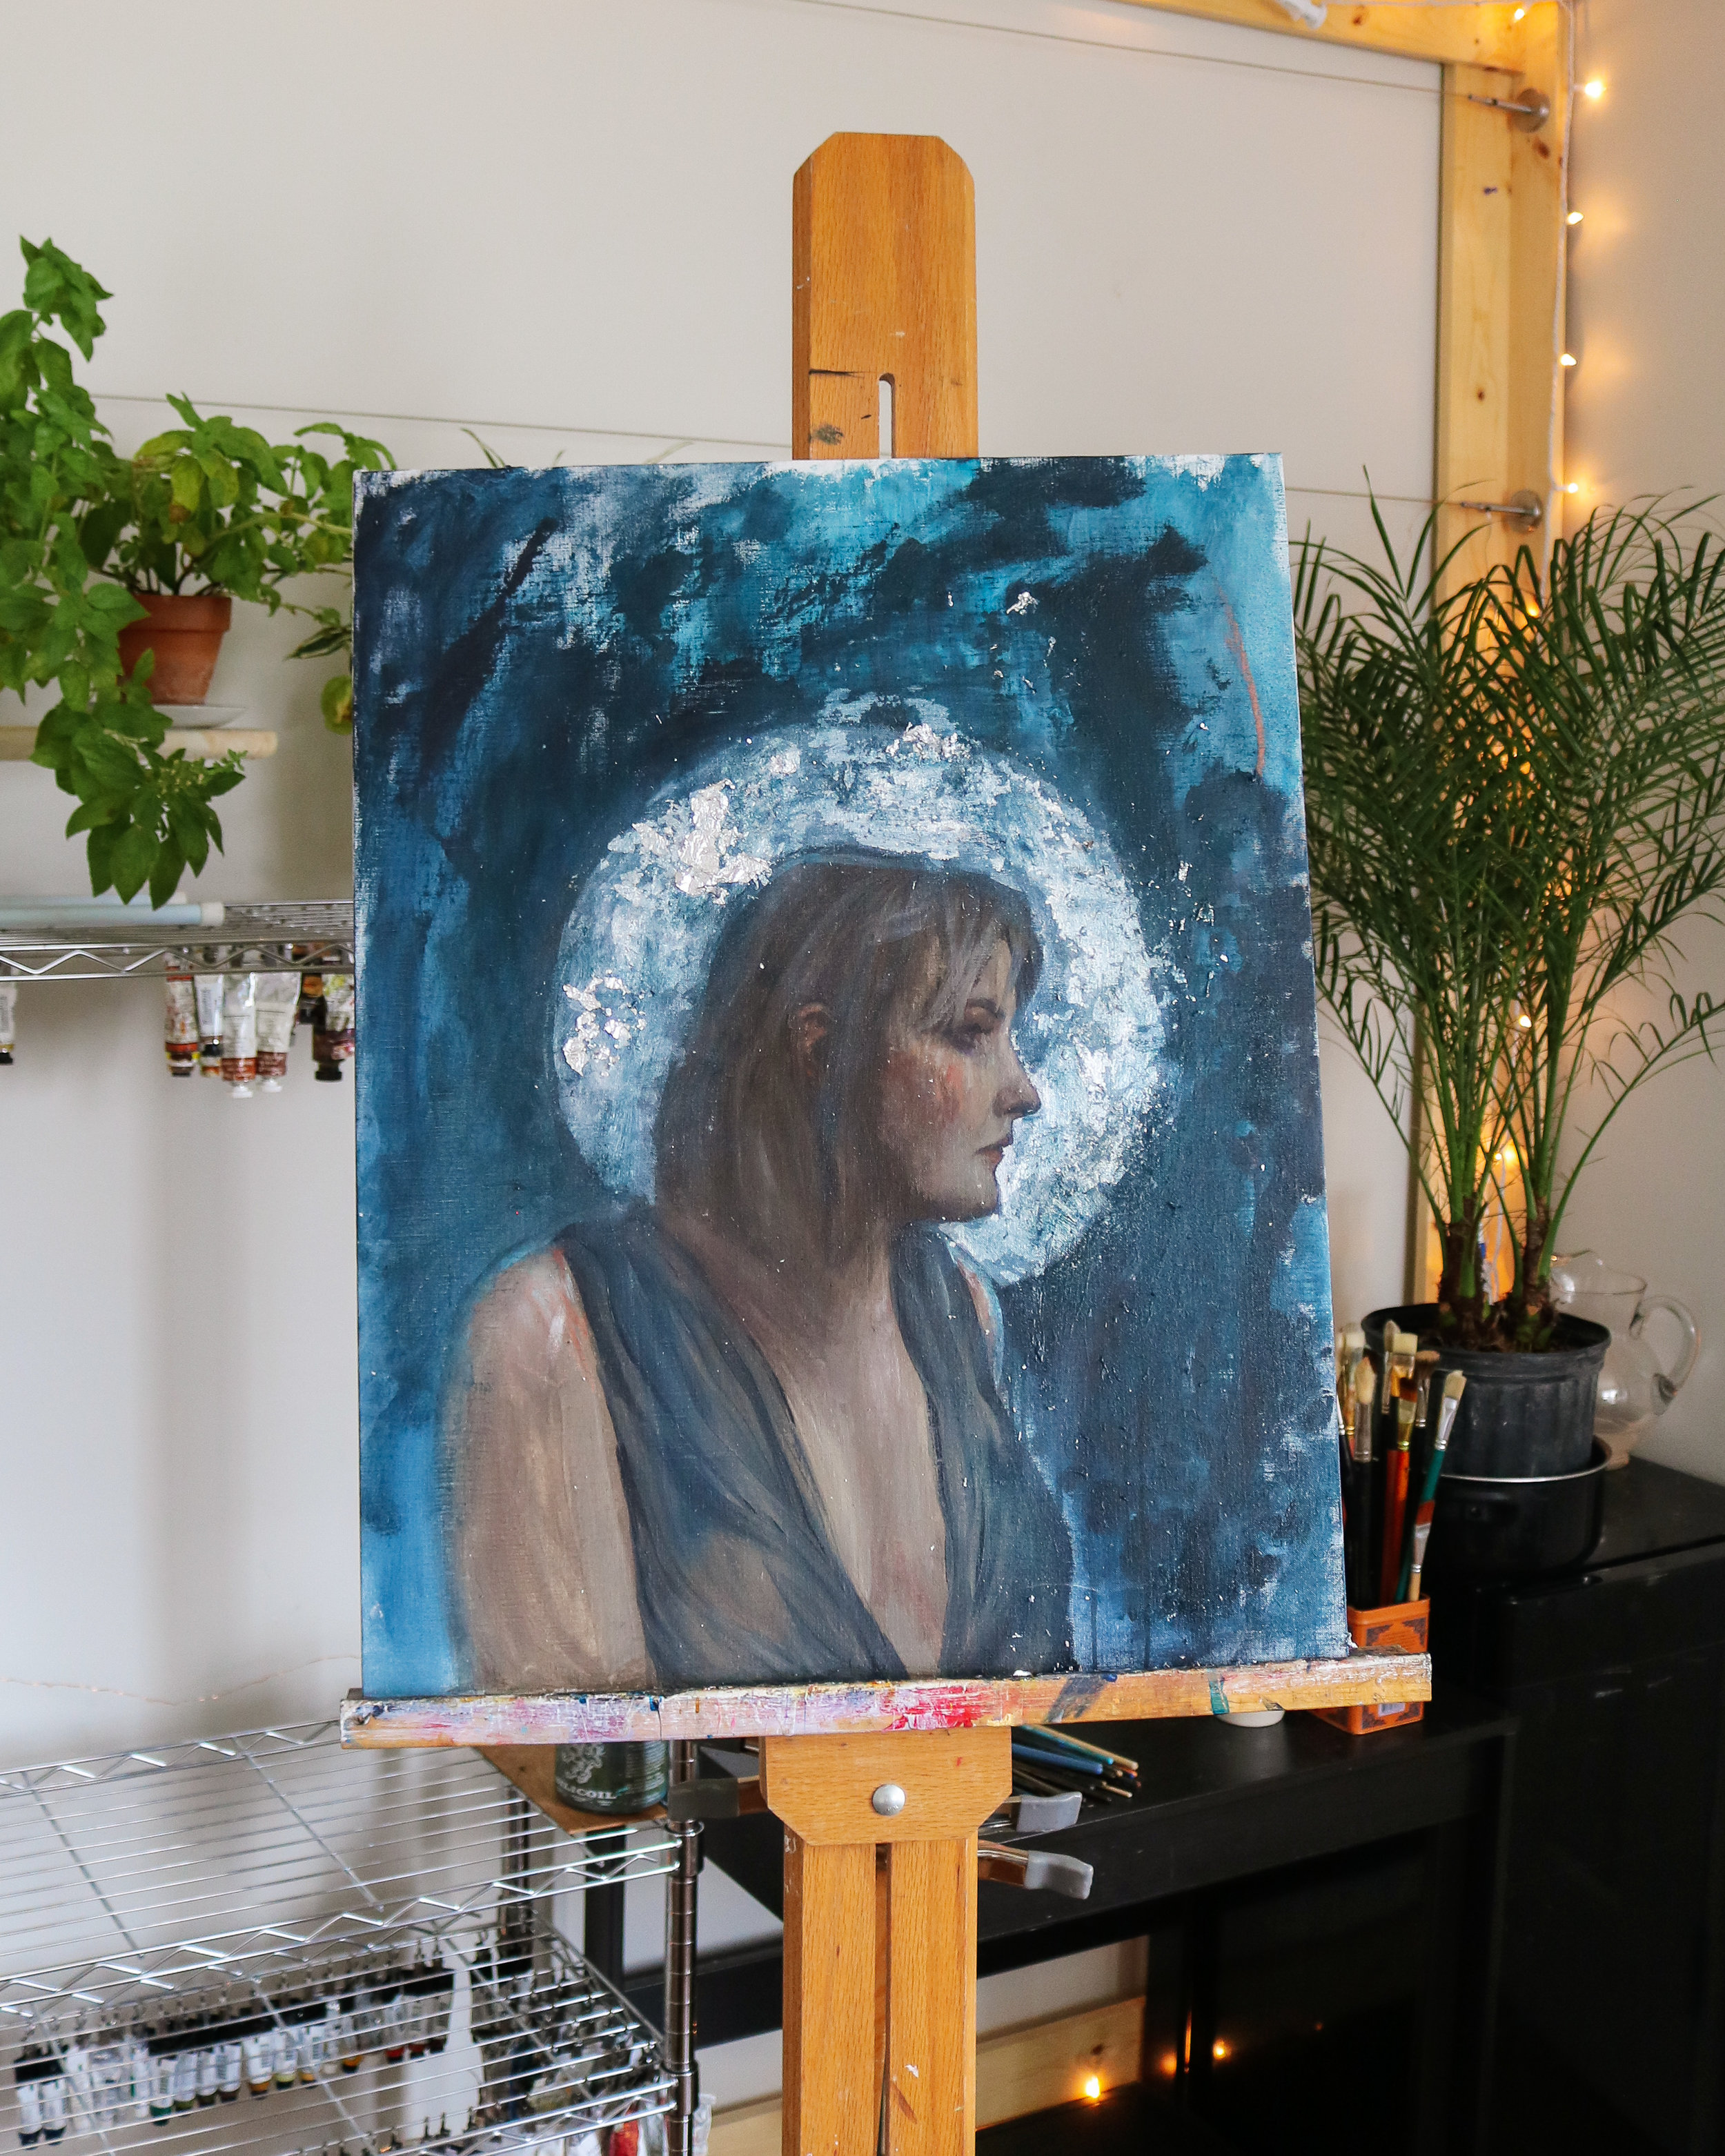 Painting I'm working on at the moment. I need to will myself to finish it very soon. I've lost the momentum/thrill with it. And yet, it holds a lot of promise.  * fingers crossed *